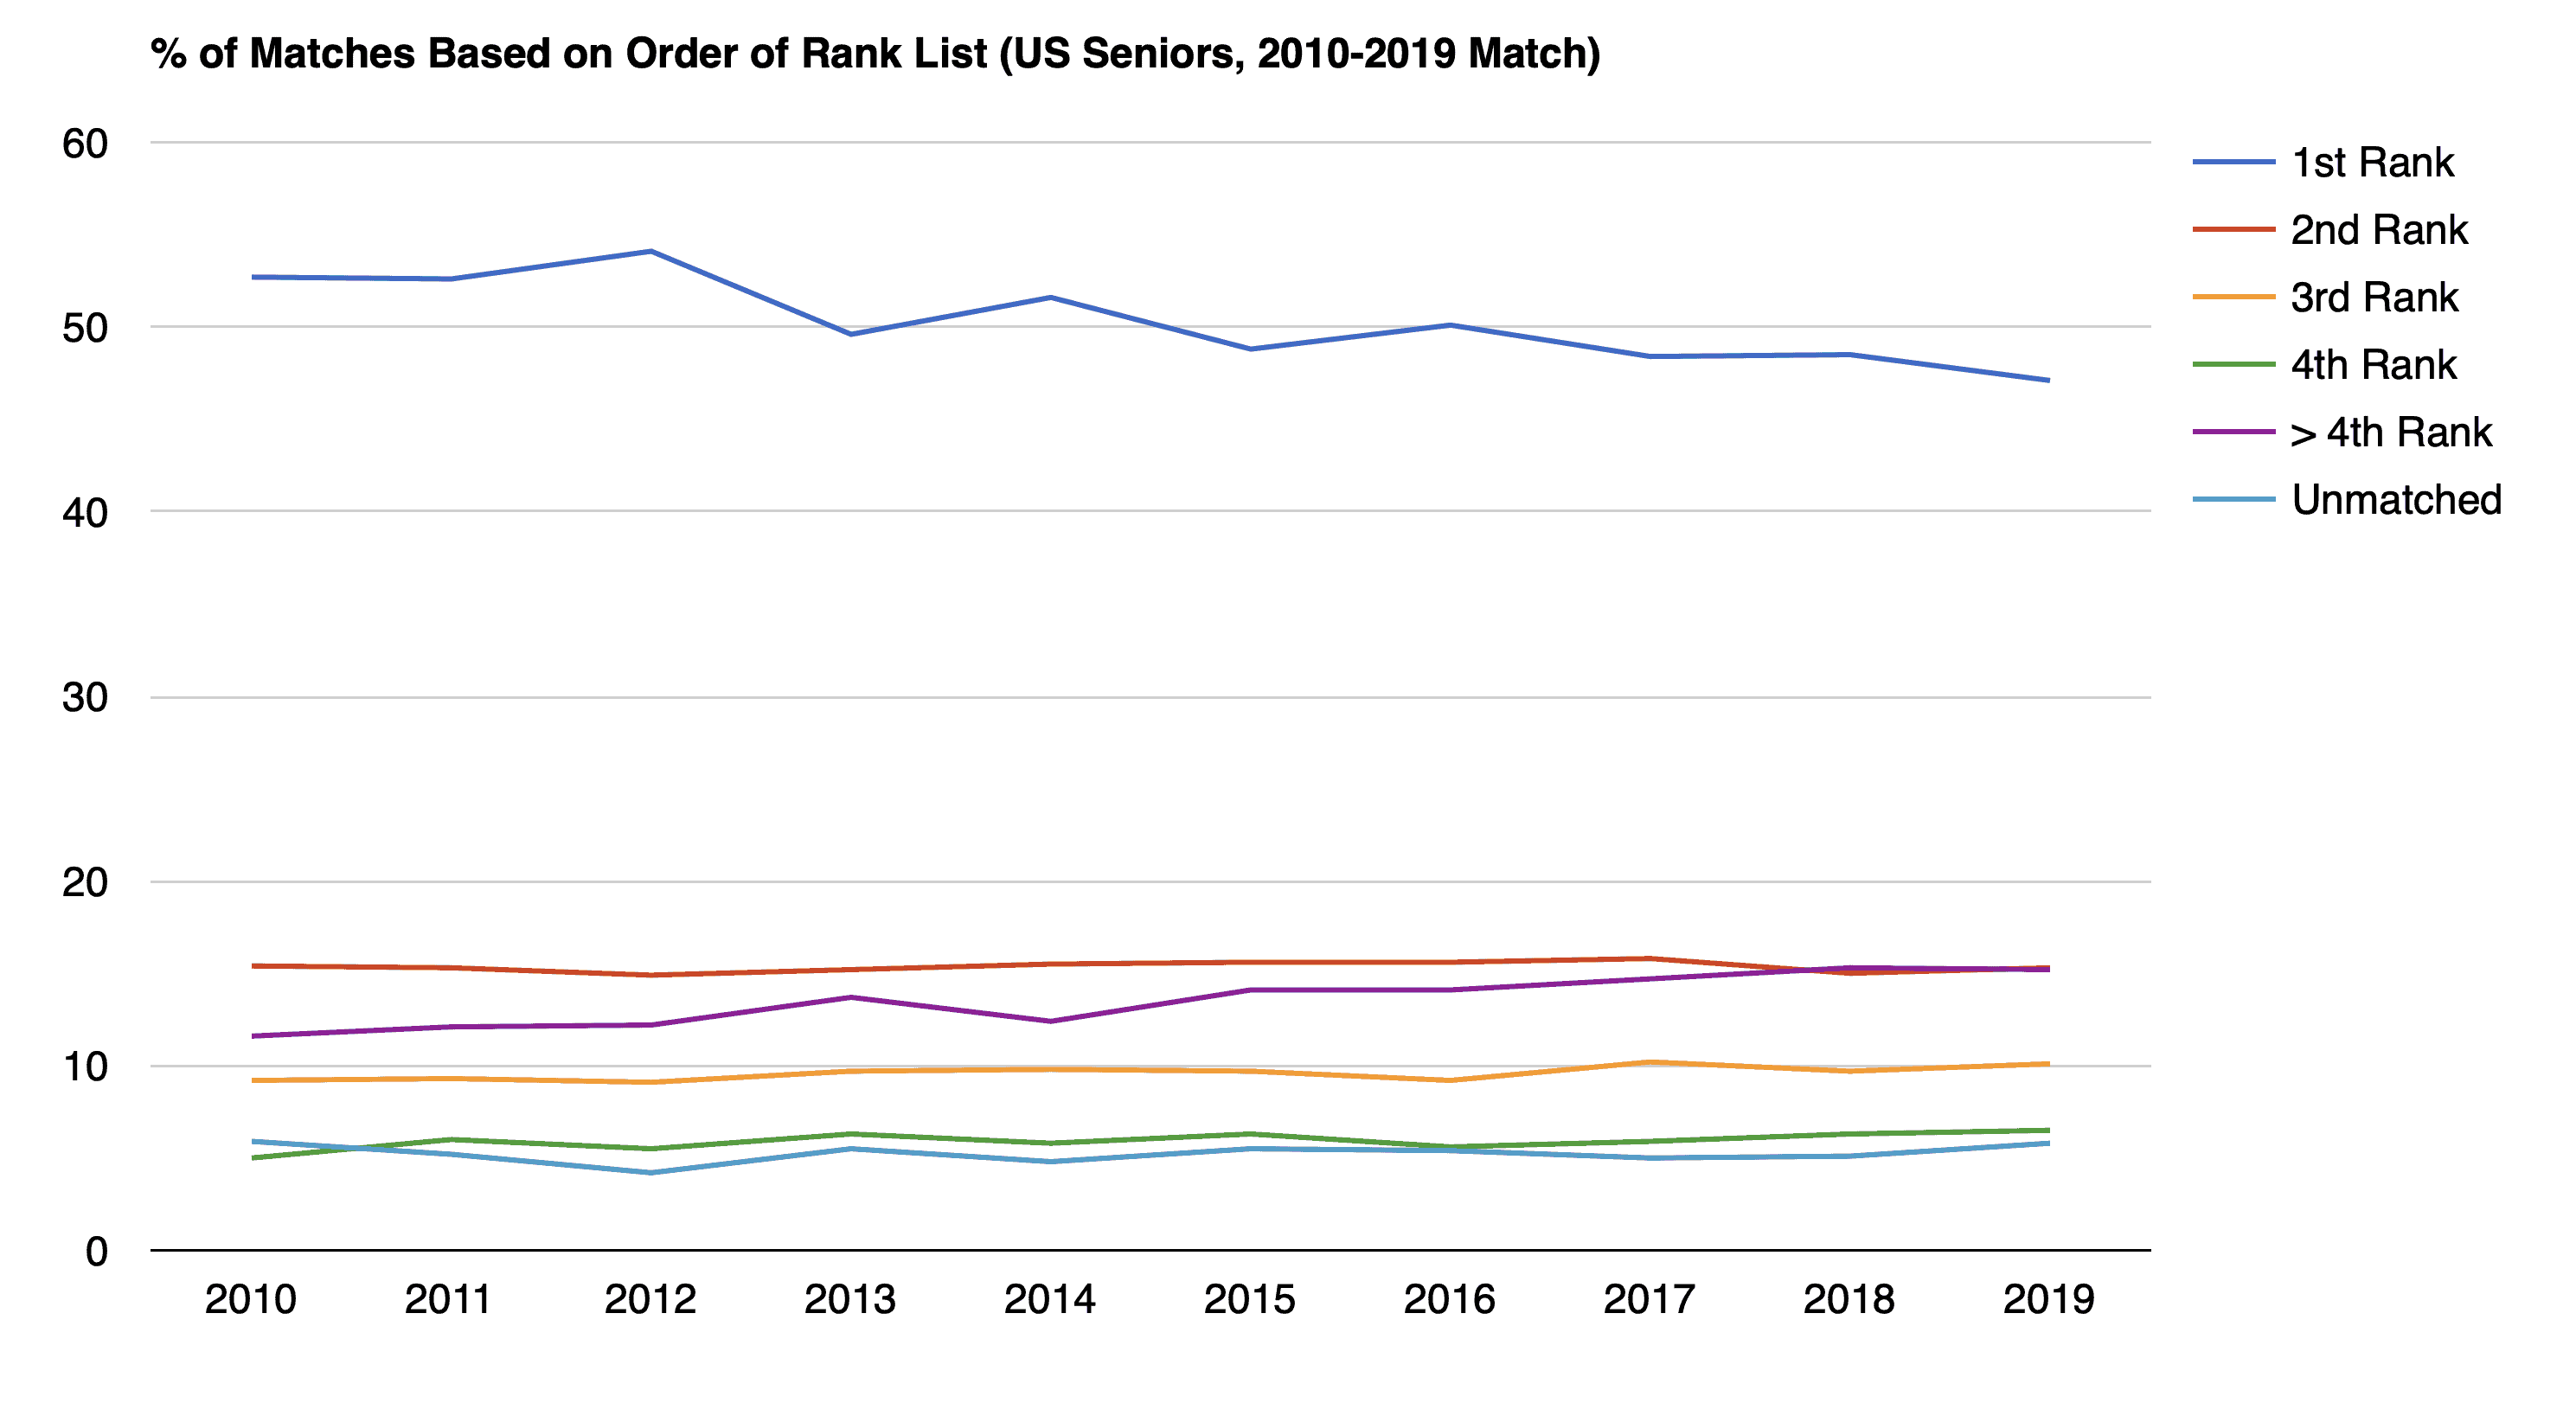 % of Matches Based on Order of Rank List